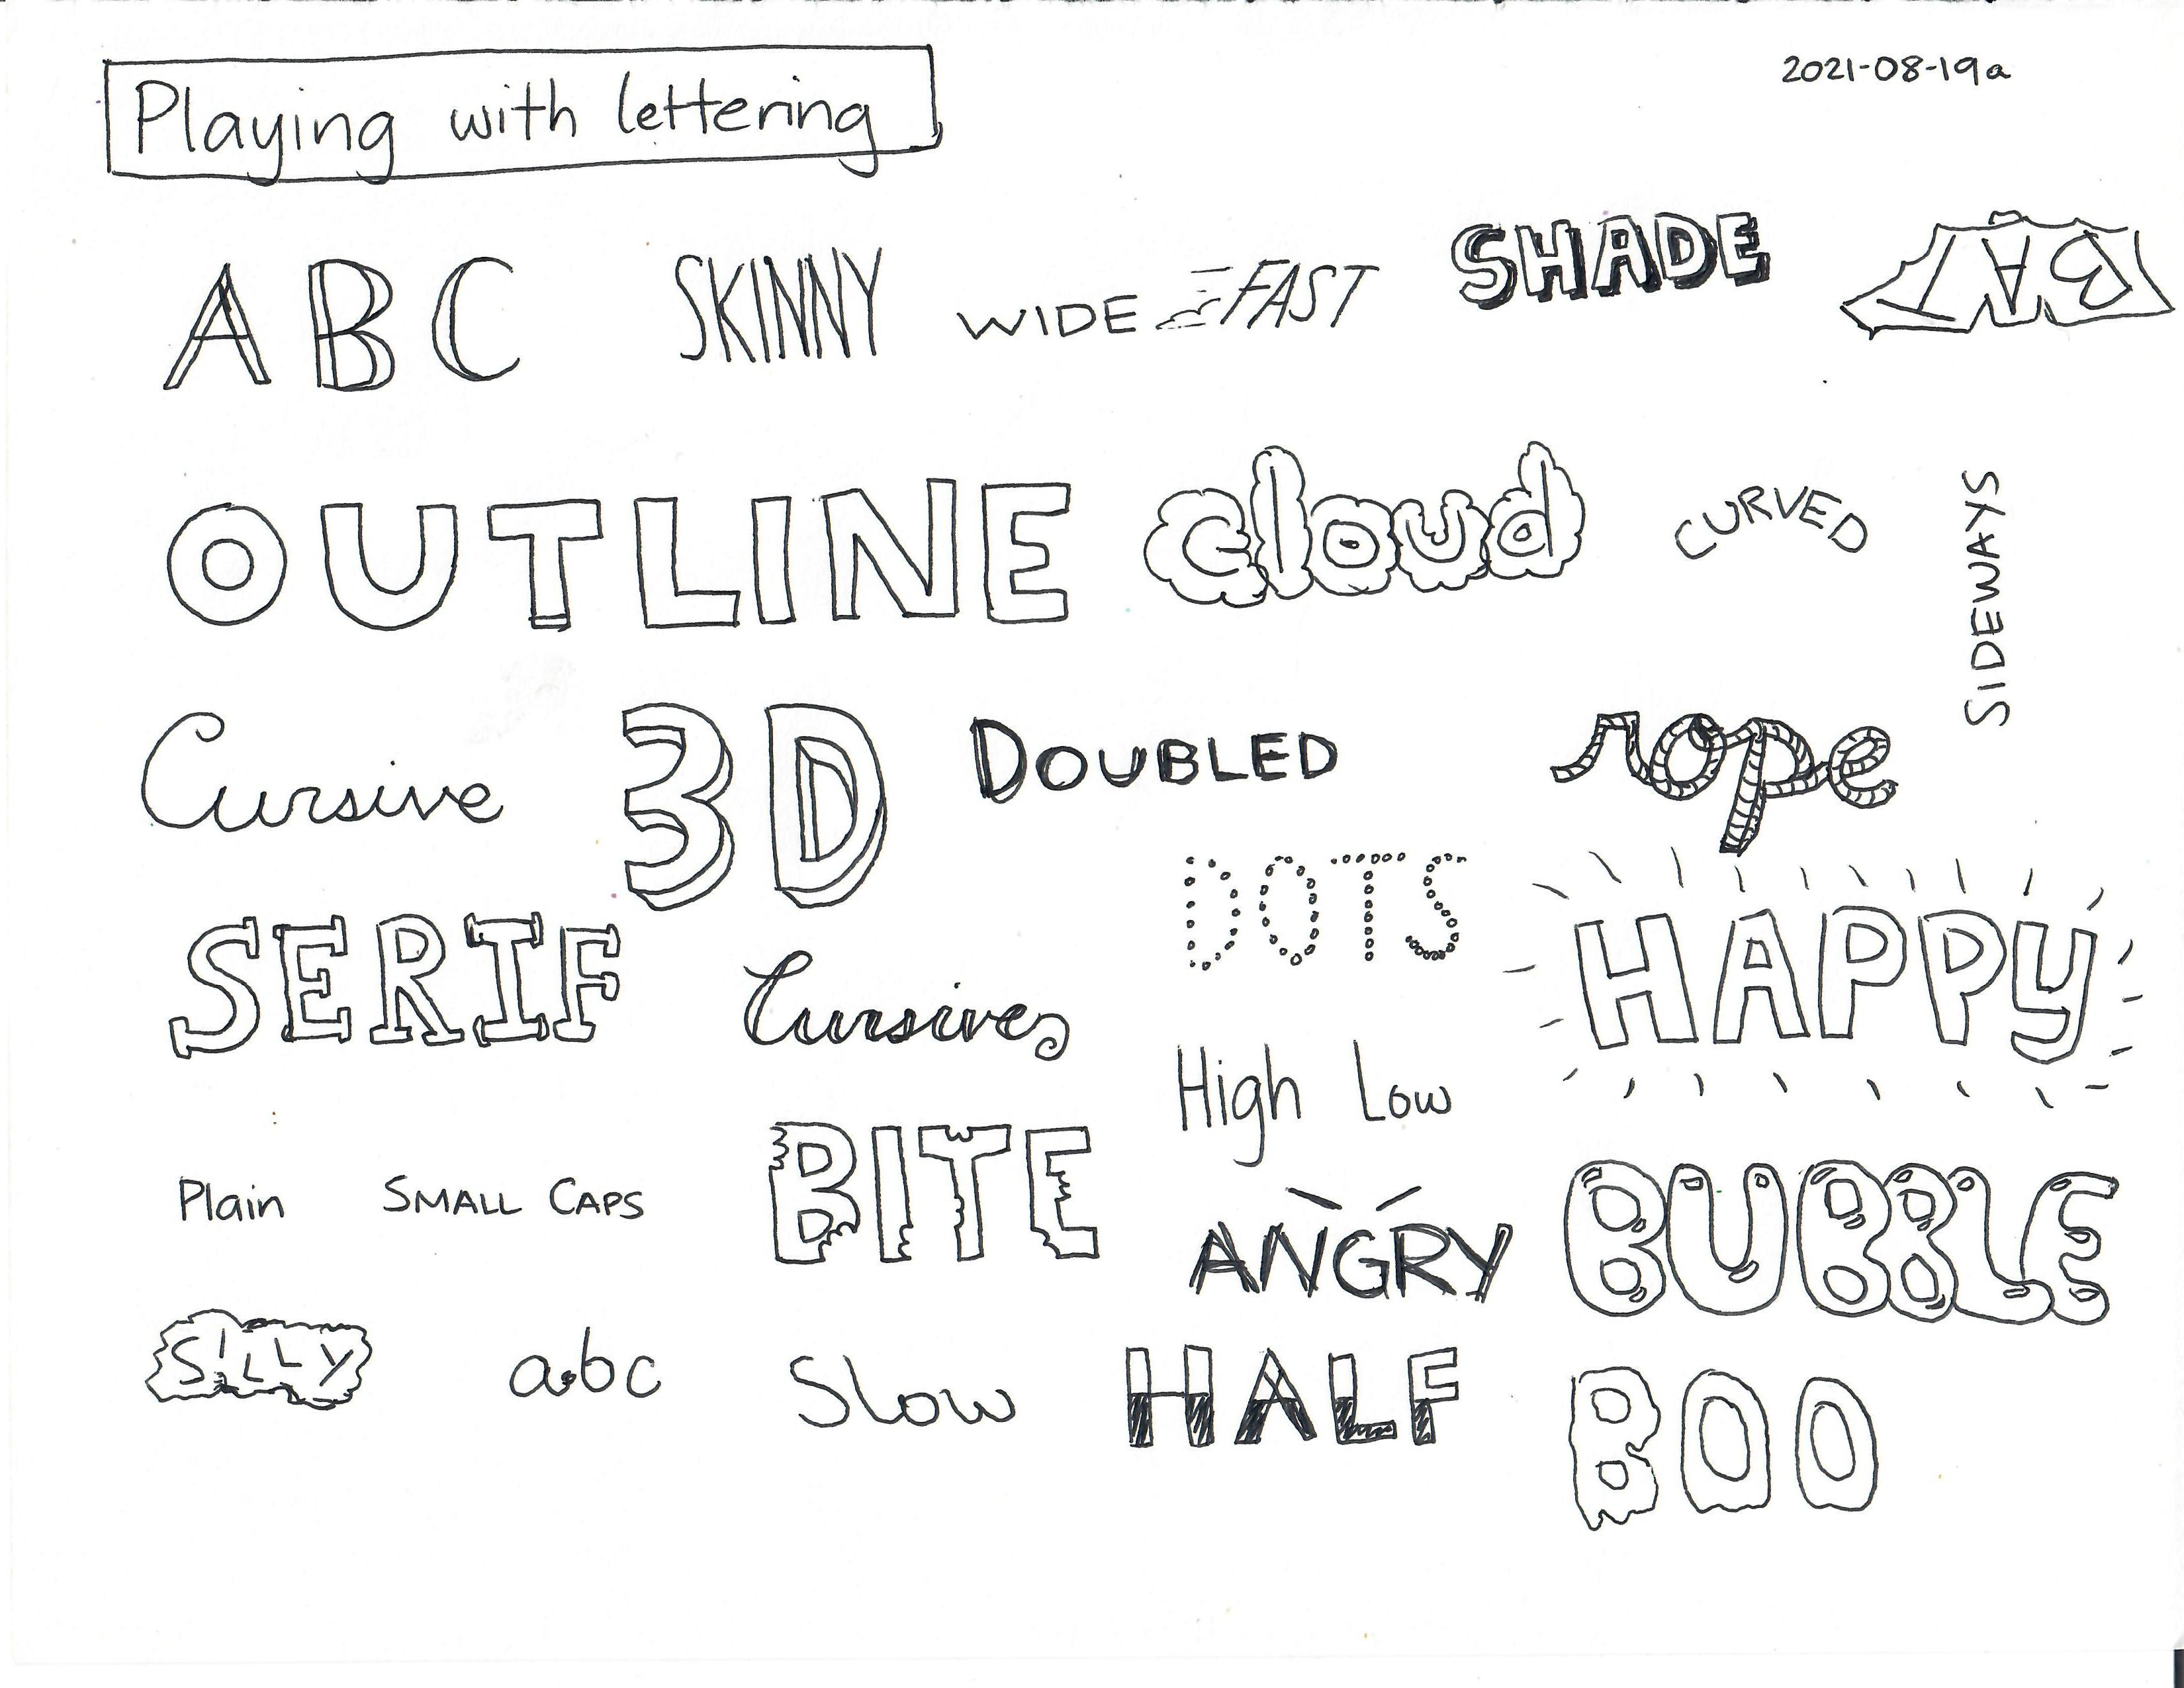 2021-08-19a Playing with lettering #lettering #sketchnoting #drawing.jpg